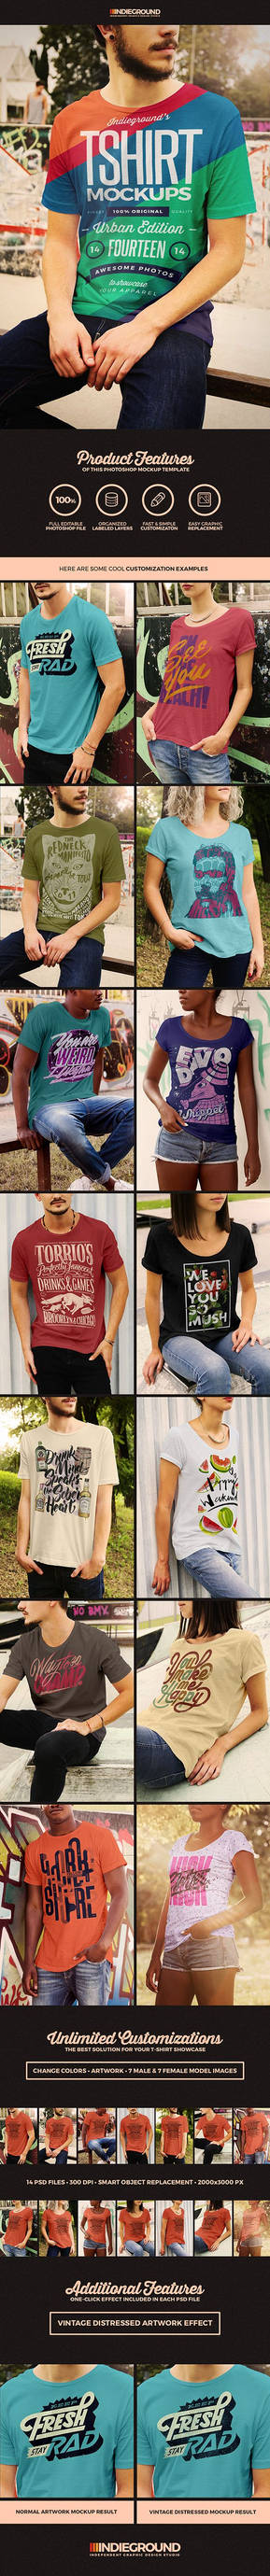 Urban T-shirt Photoshop Mockups